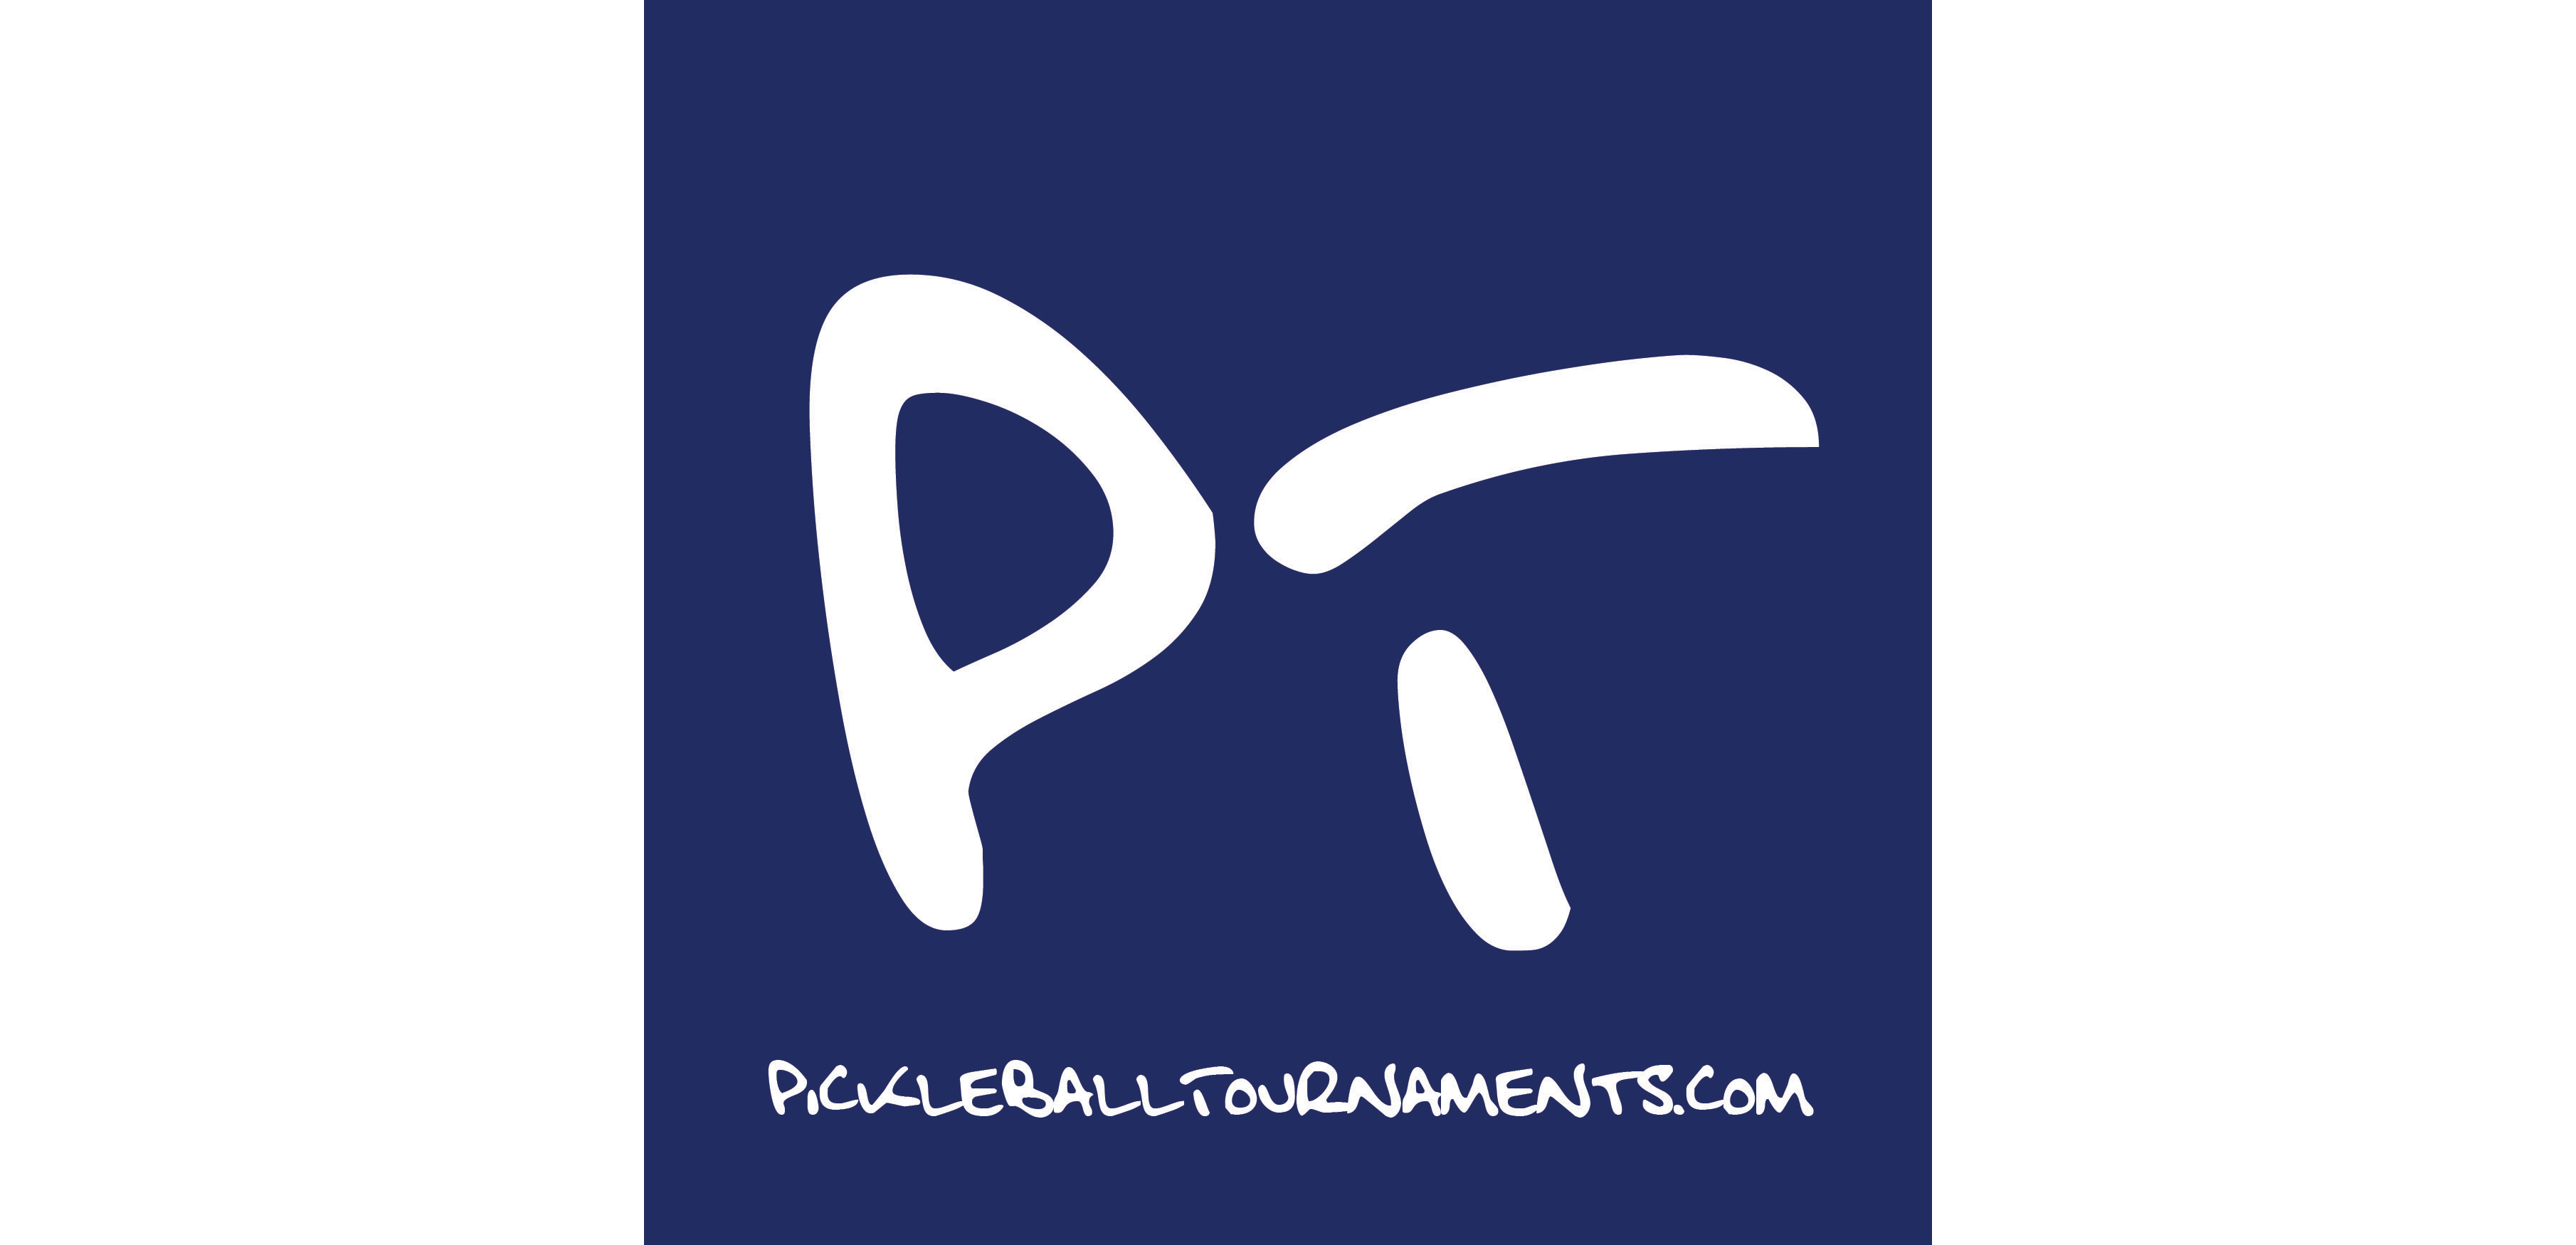 pickleballtournaments.com